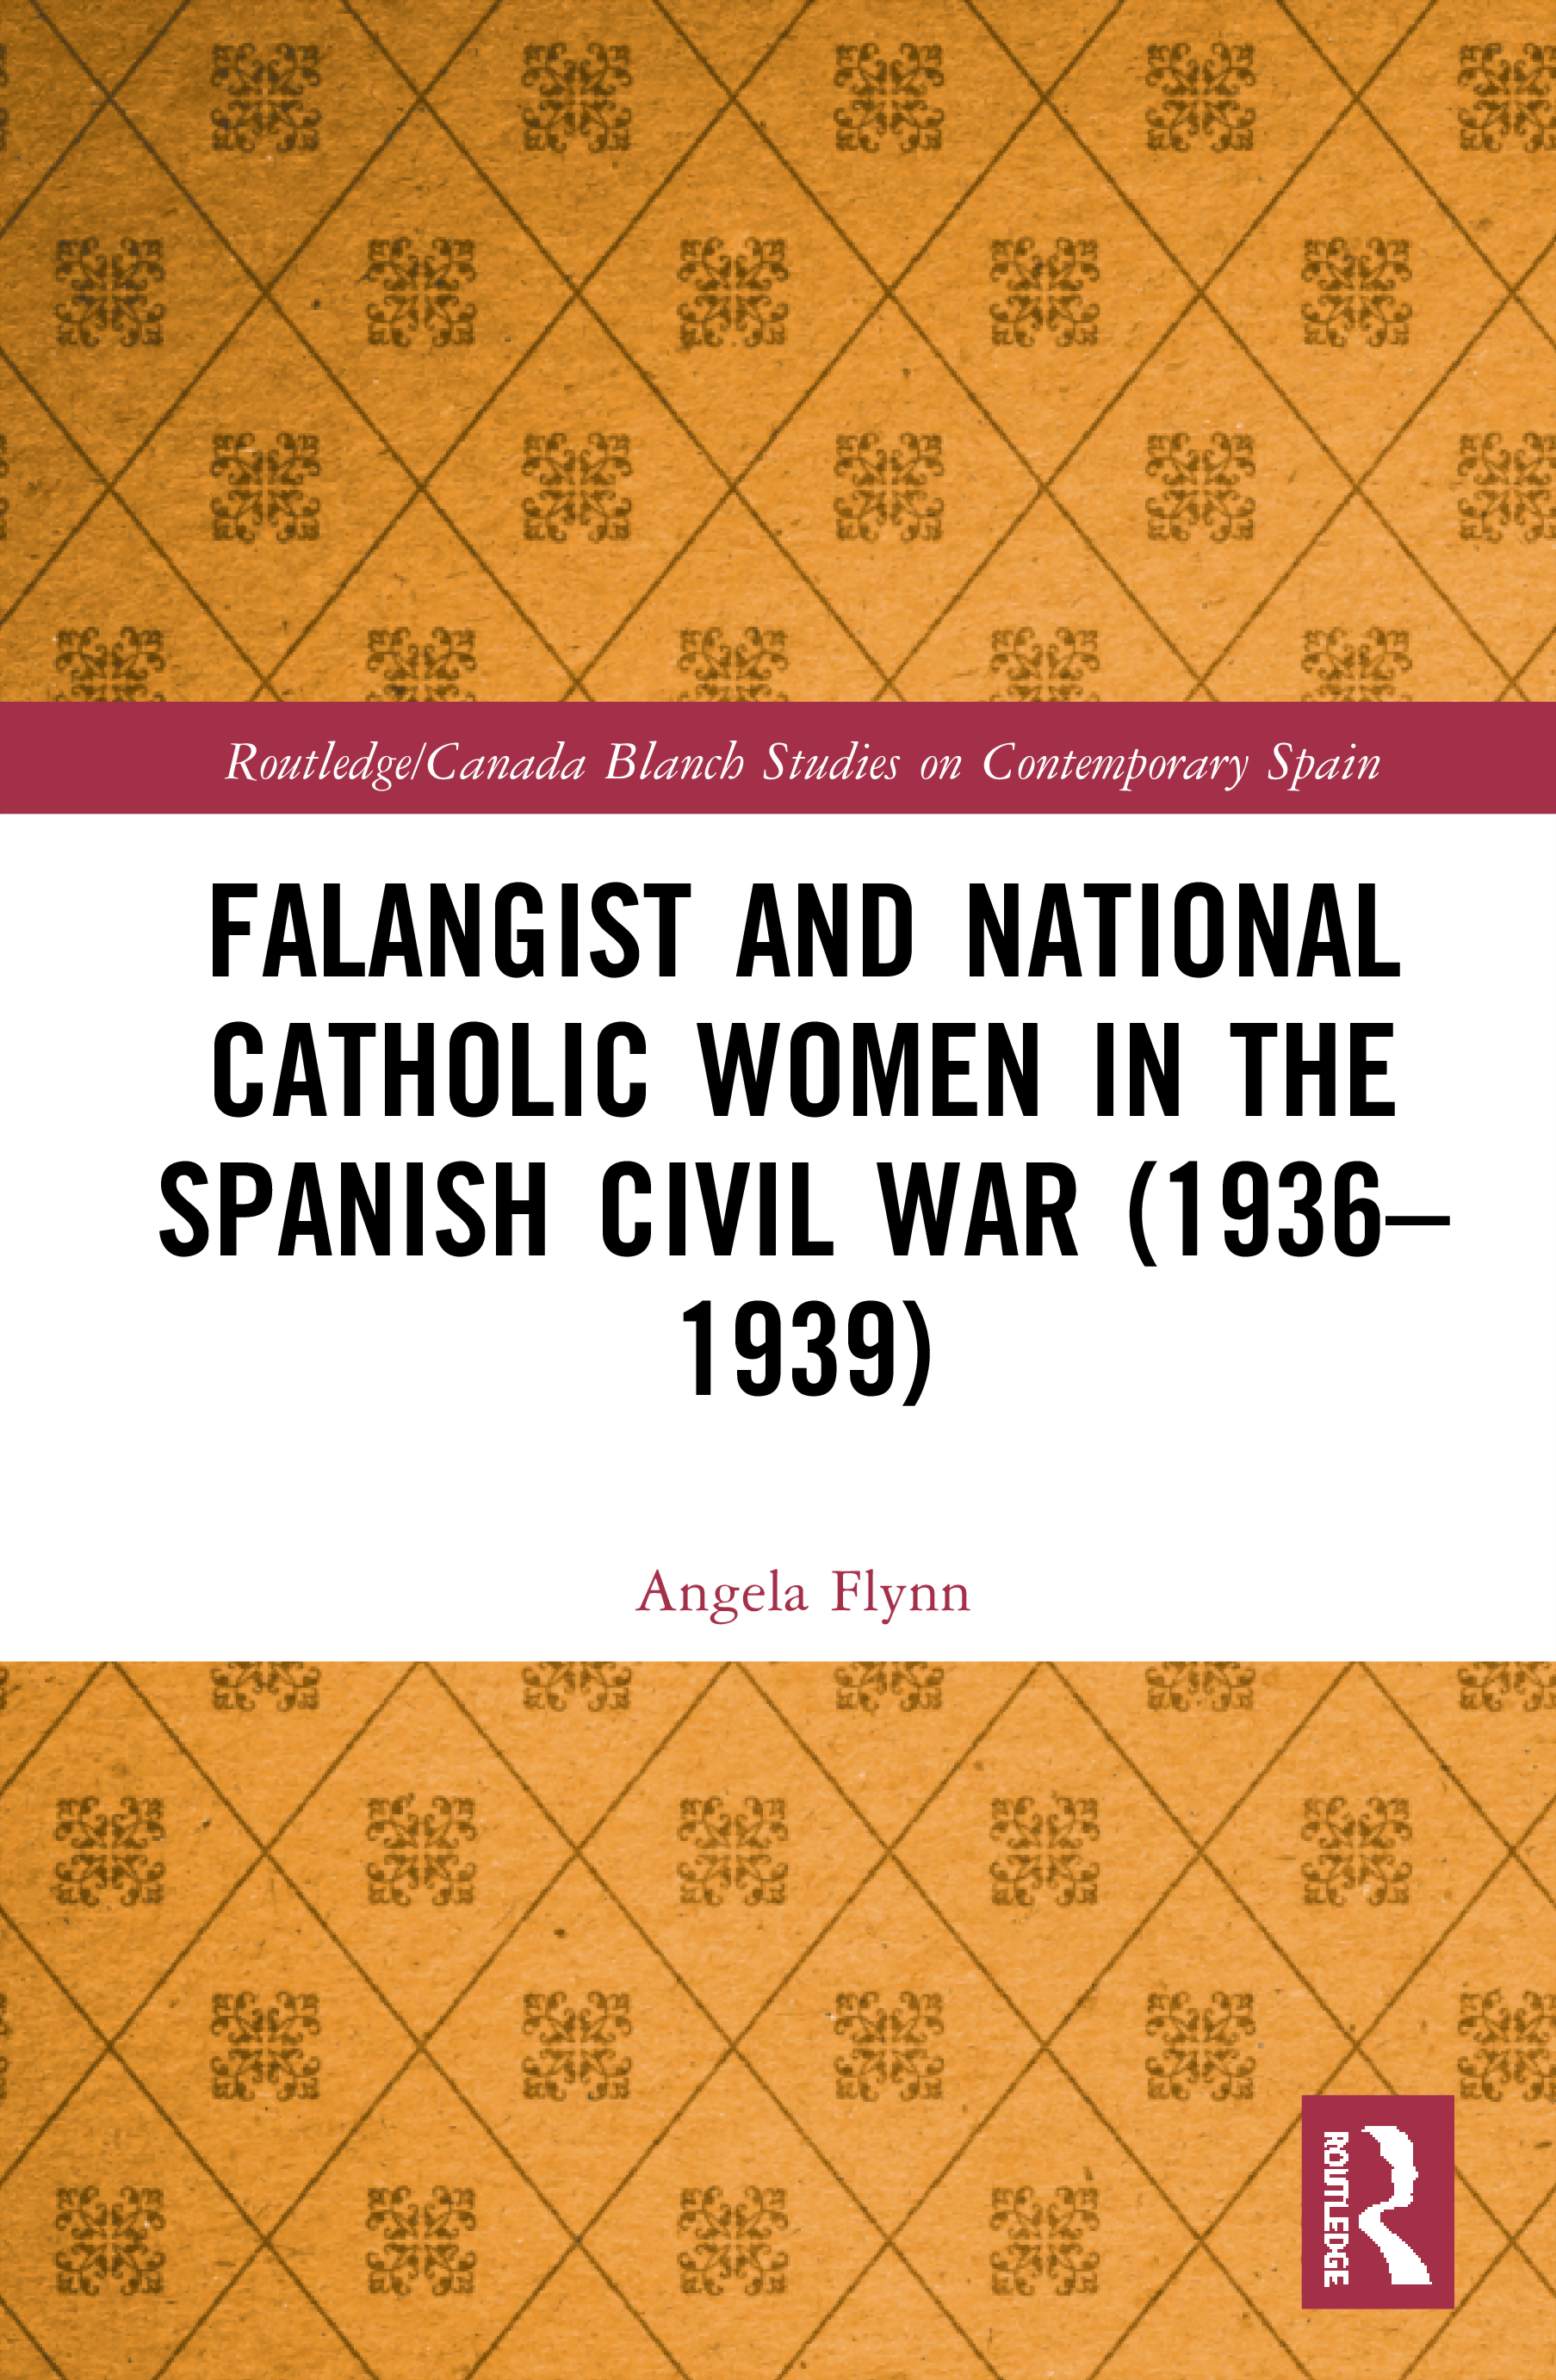 Falangist and National Catholic Women in the Spanish Civil War (1936-1939) book cover